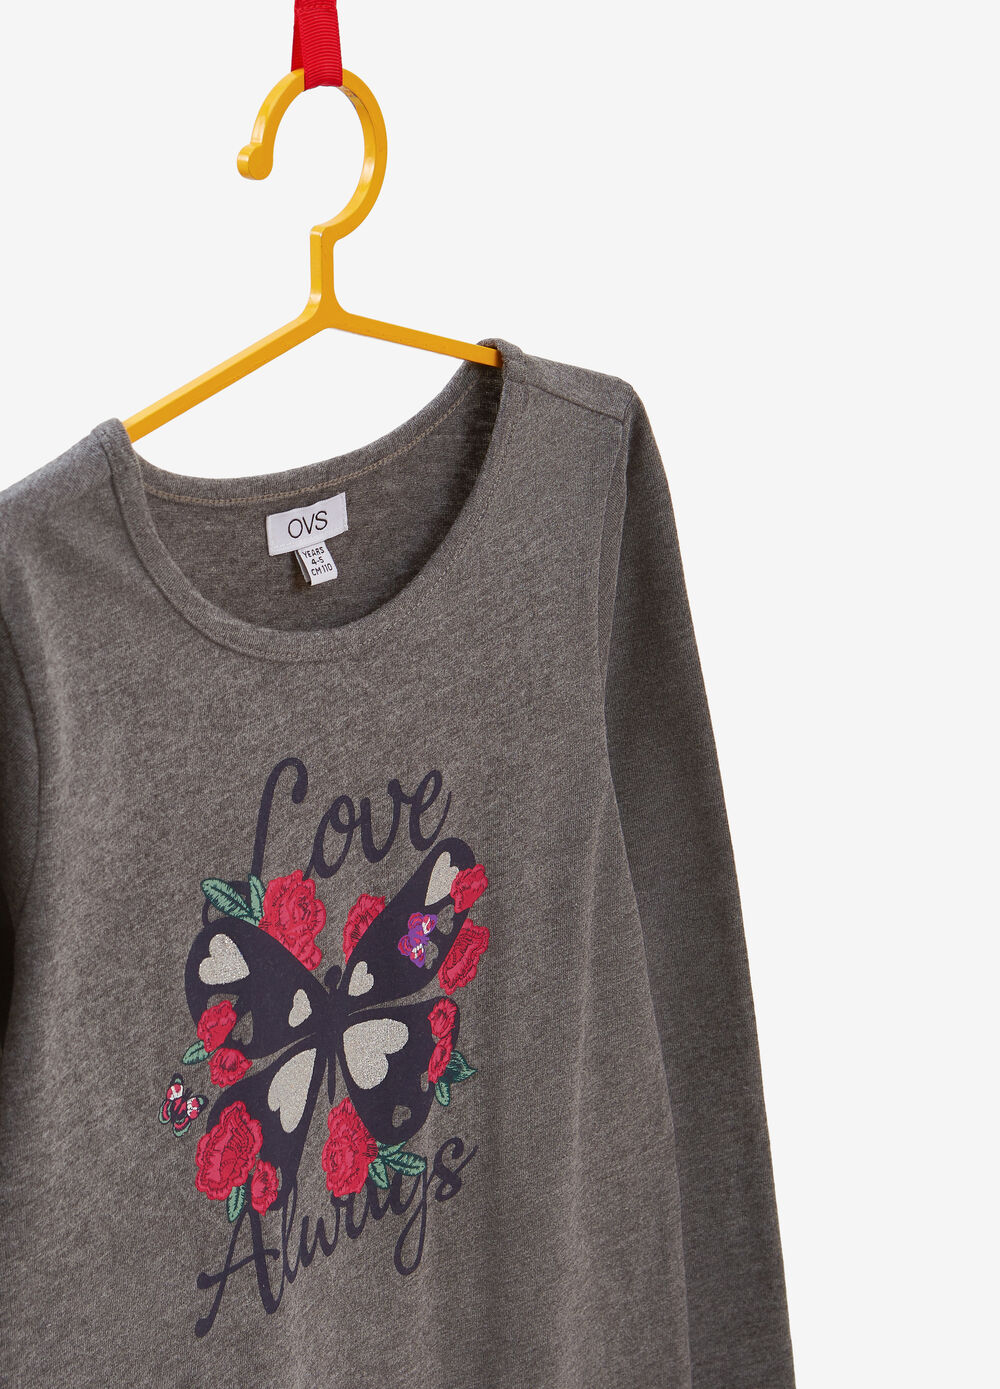 Cotton T-shirt with lettering and butterfly print